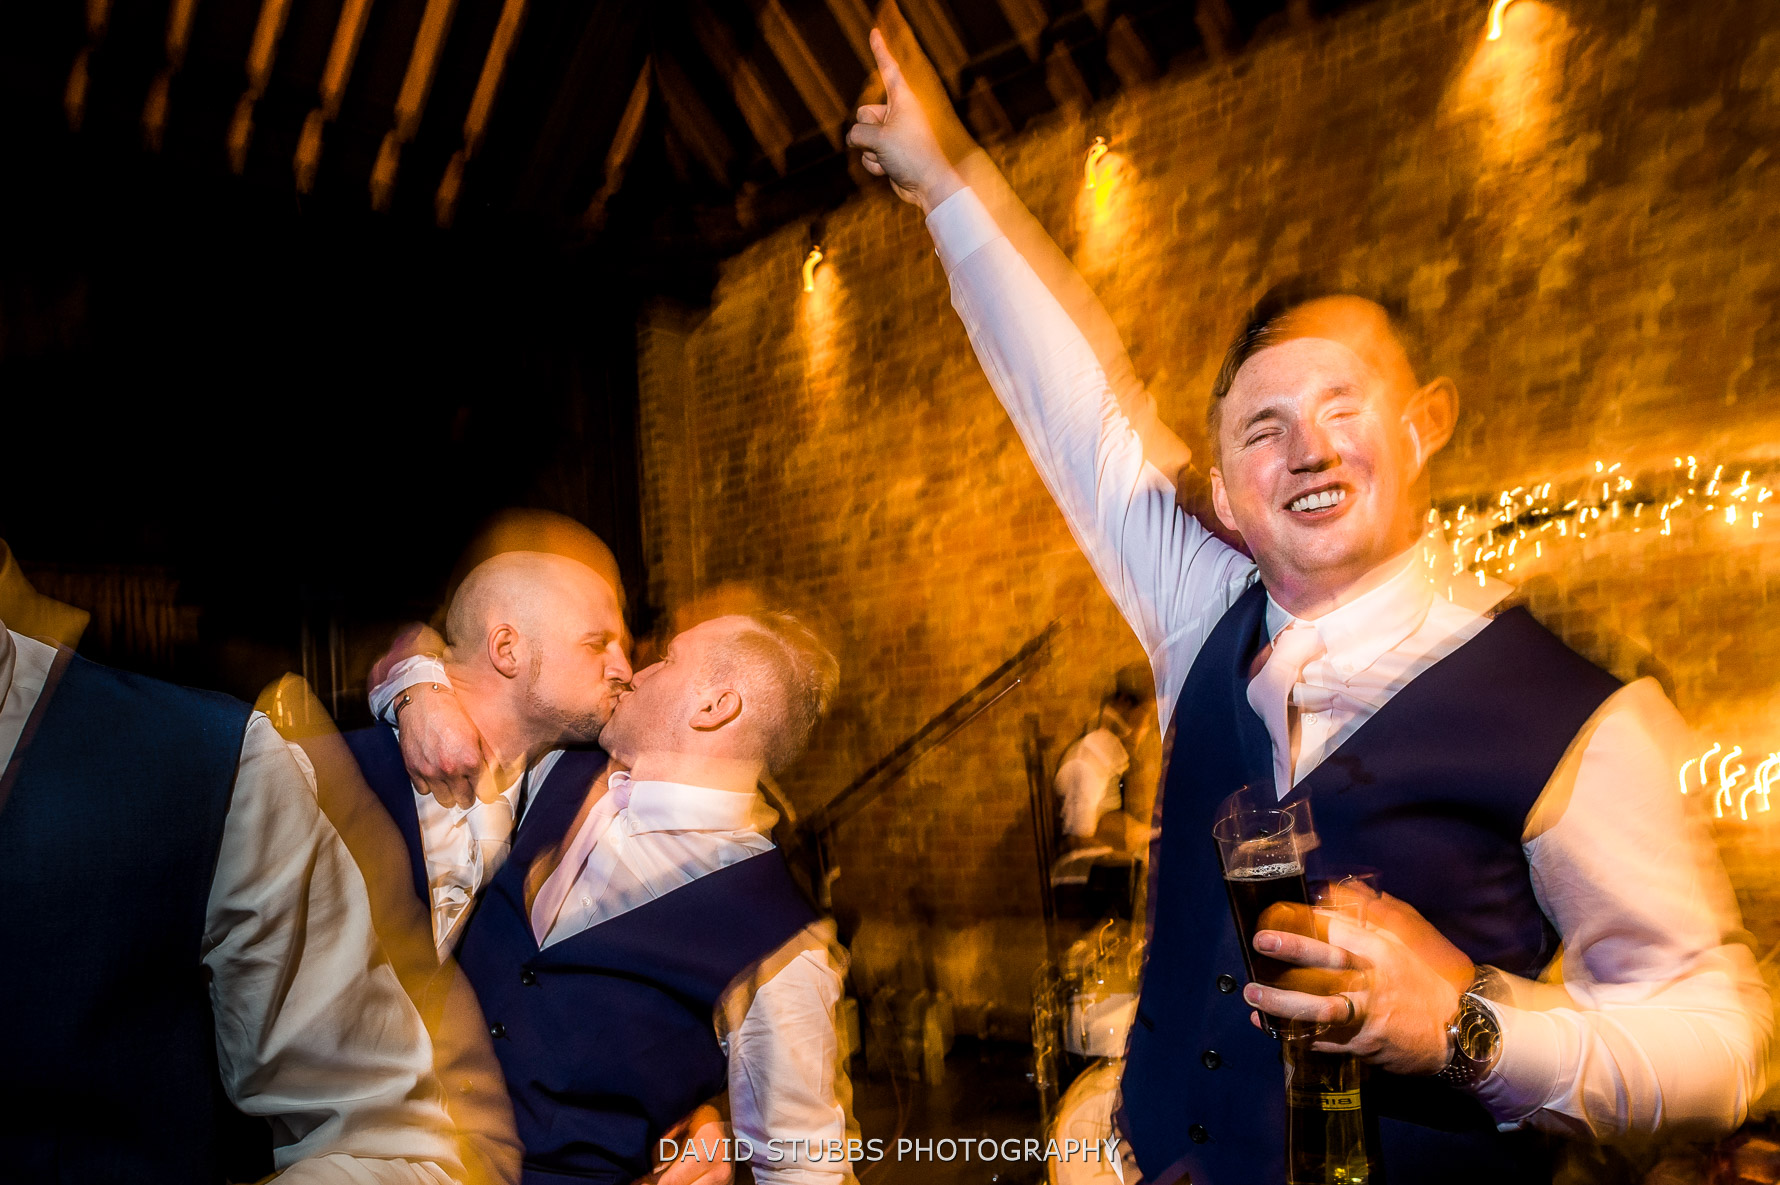 last shot of the wedding at Cooling castle Barns